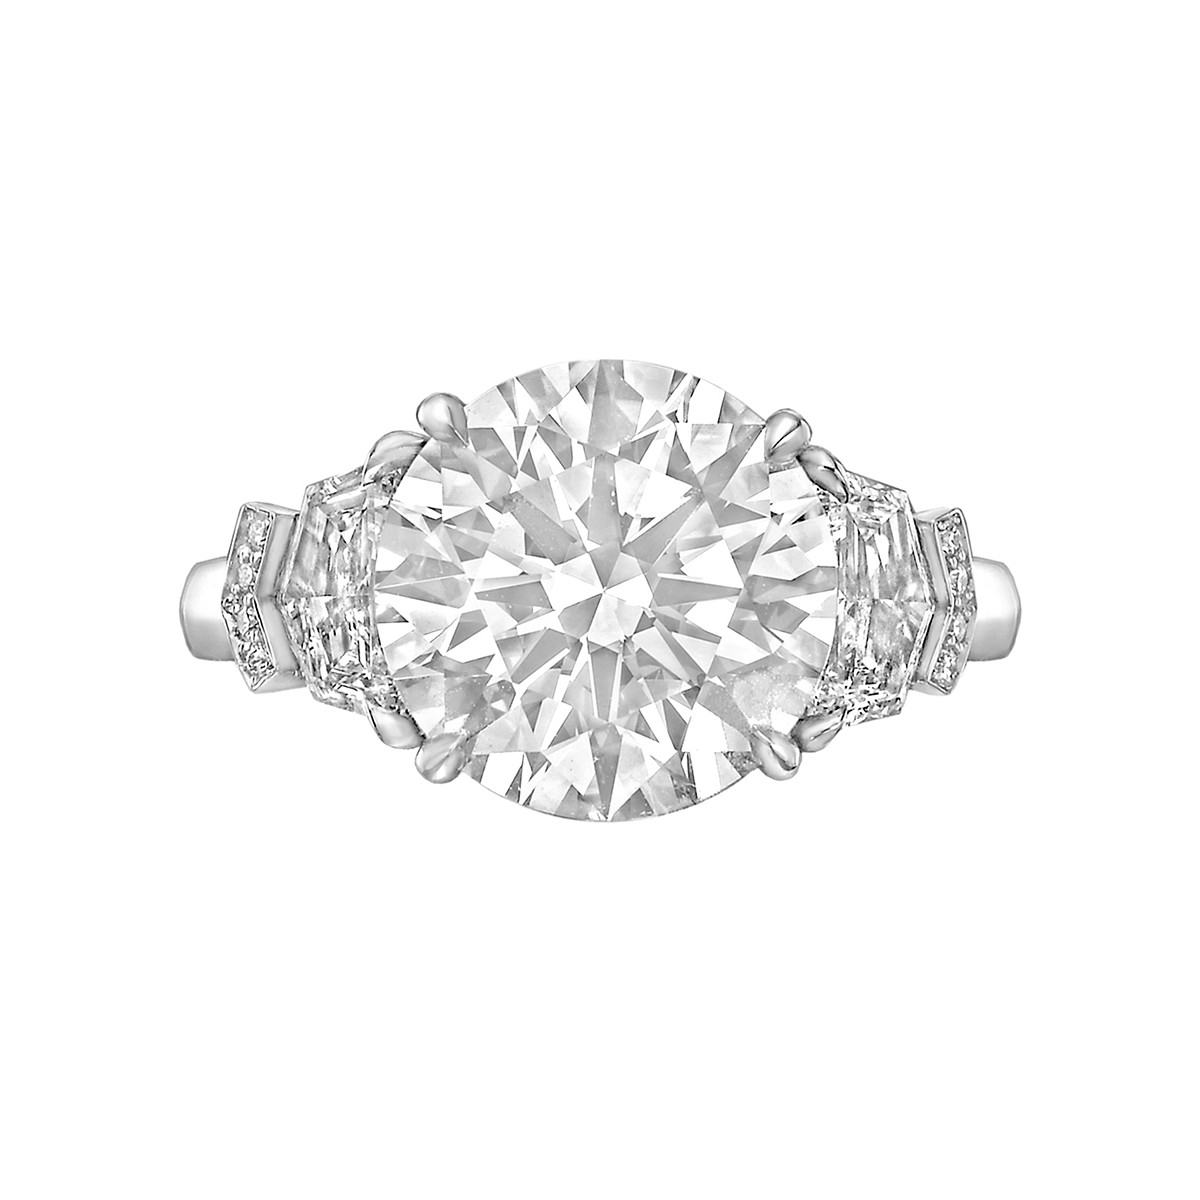 4.36ct Colorless & Internally Flawless Round Brilliant Diamond Ring